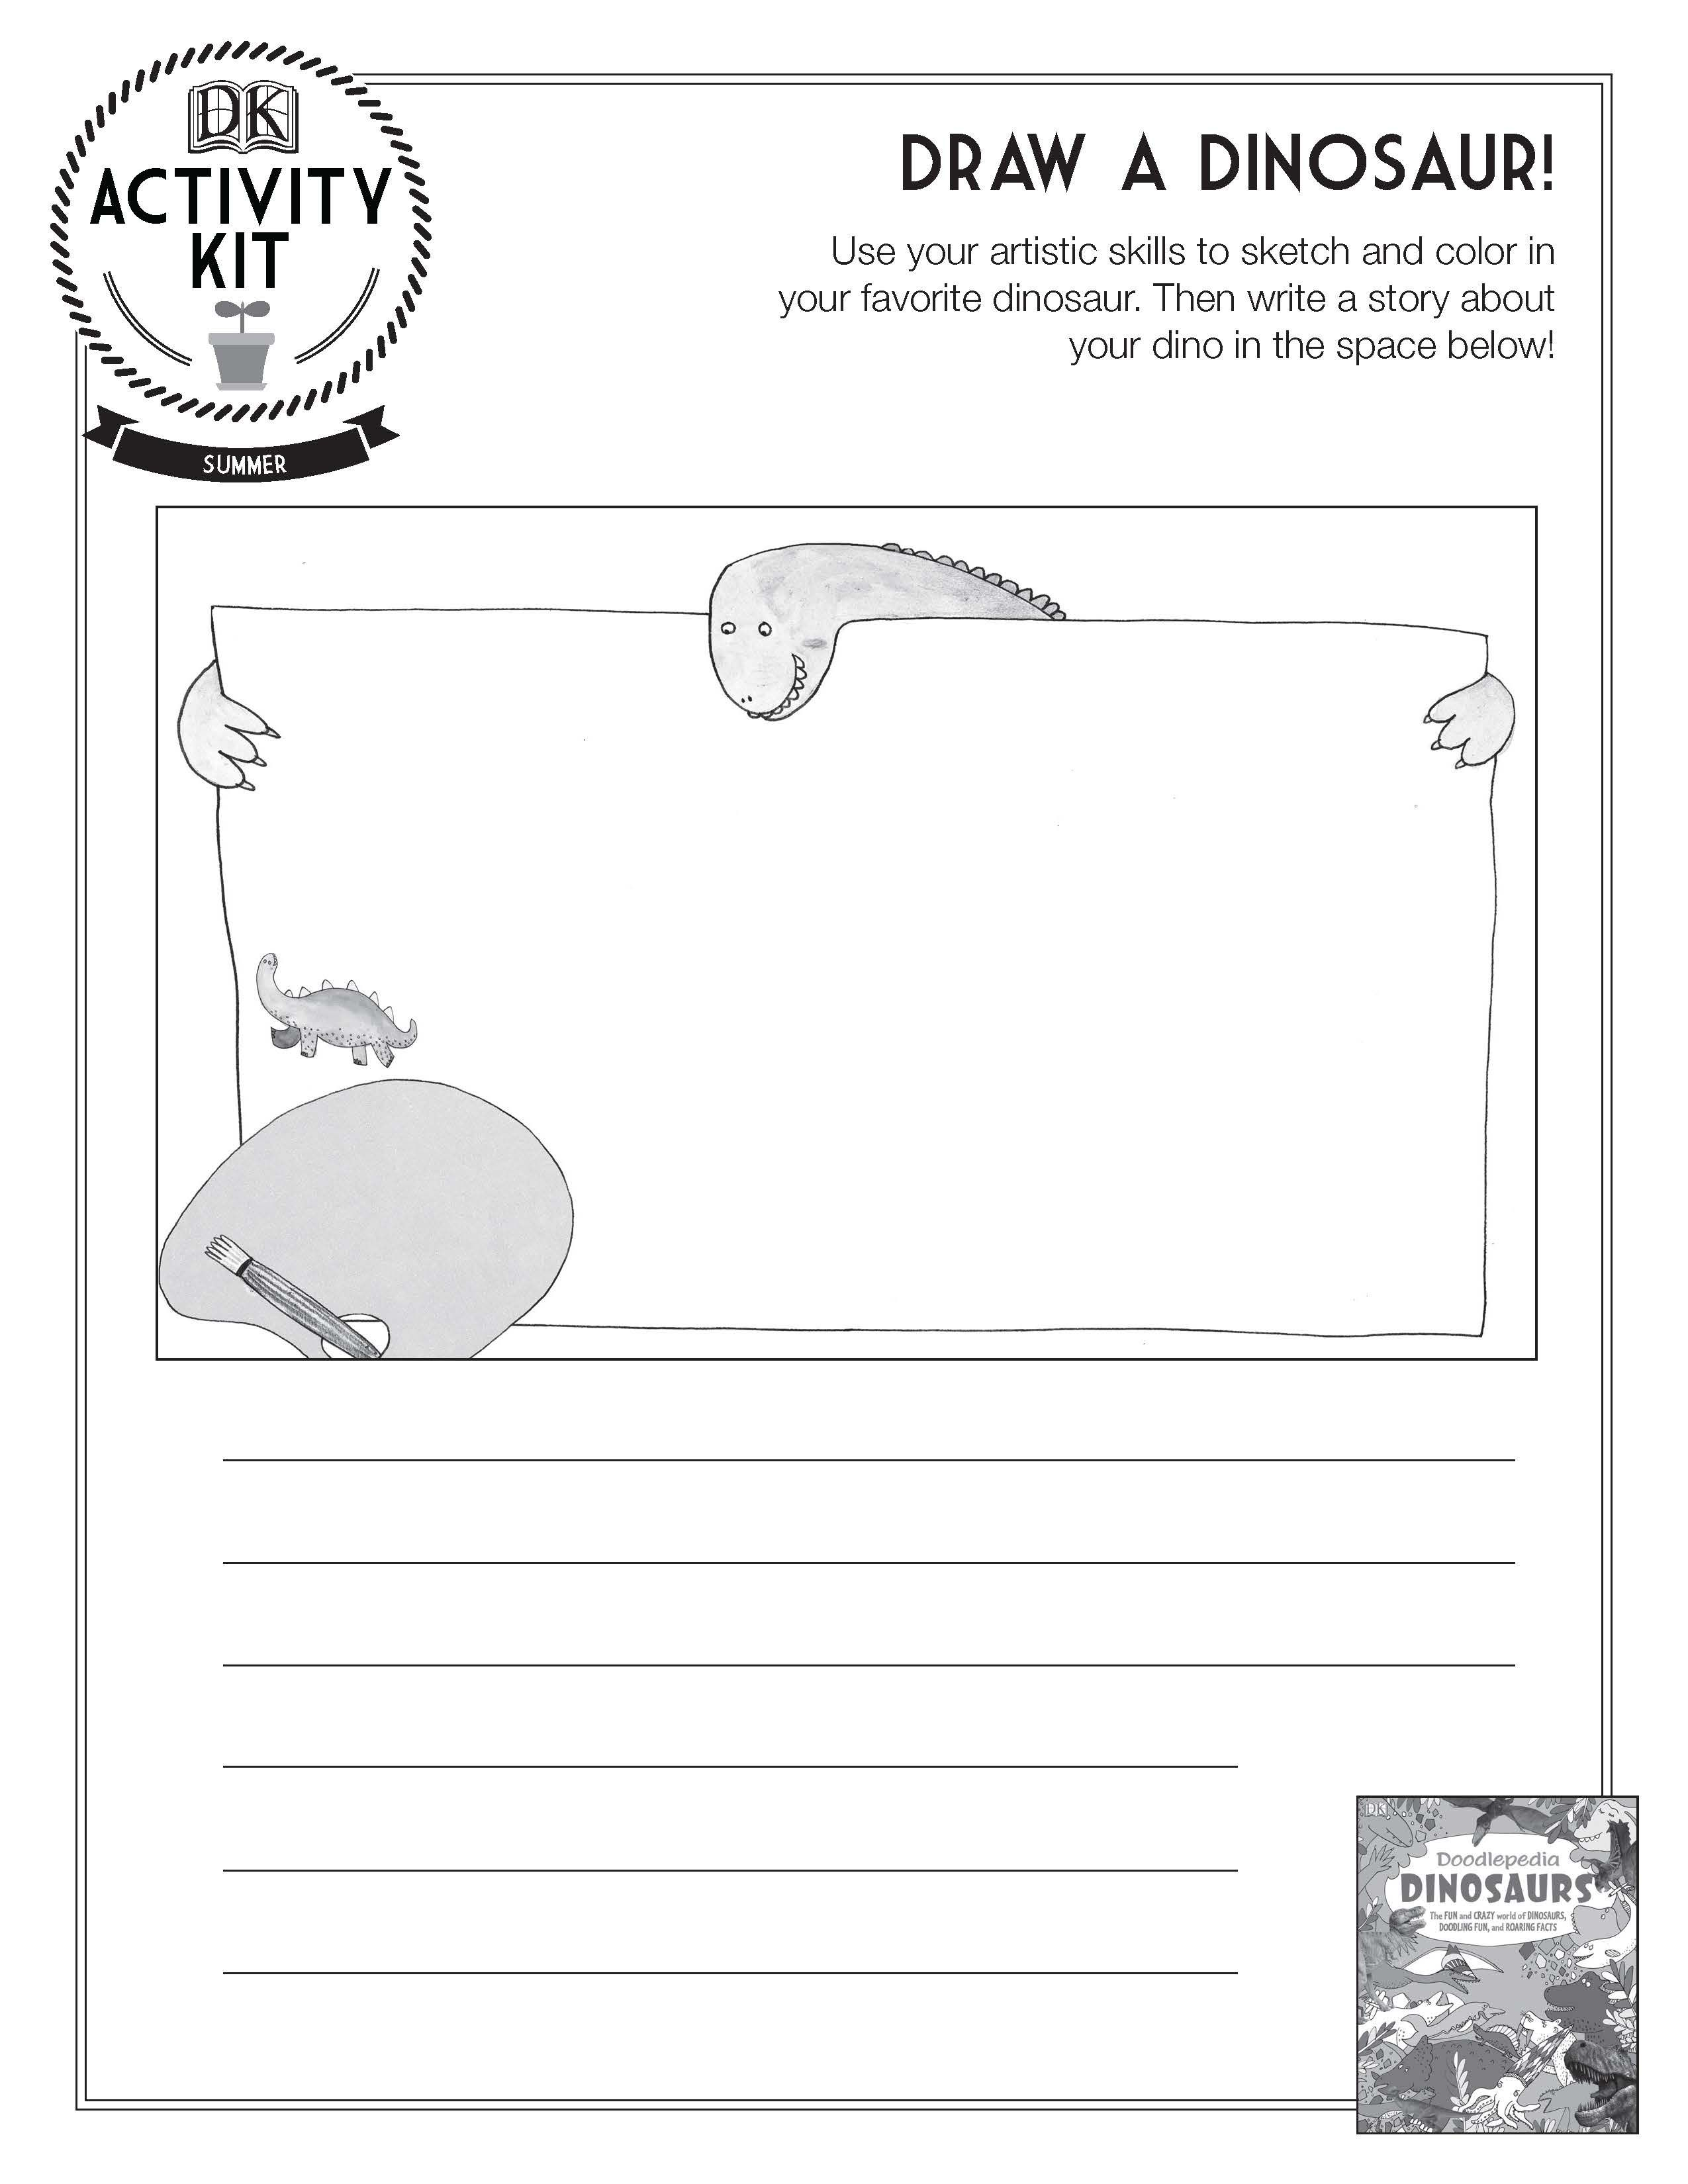 Draw A Dinosaur Activity Sheet Great Idea For A Writing Prompt